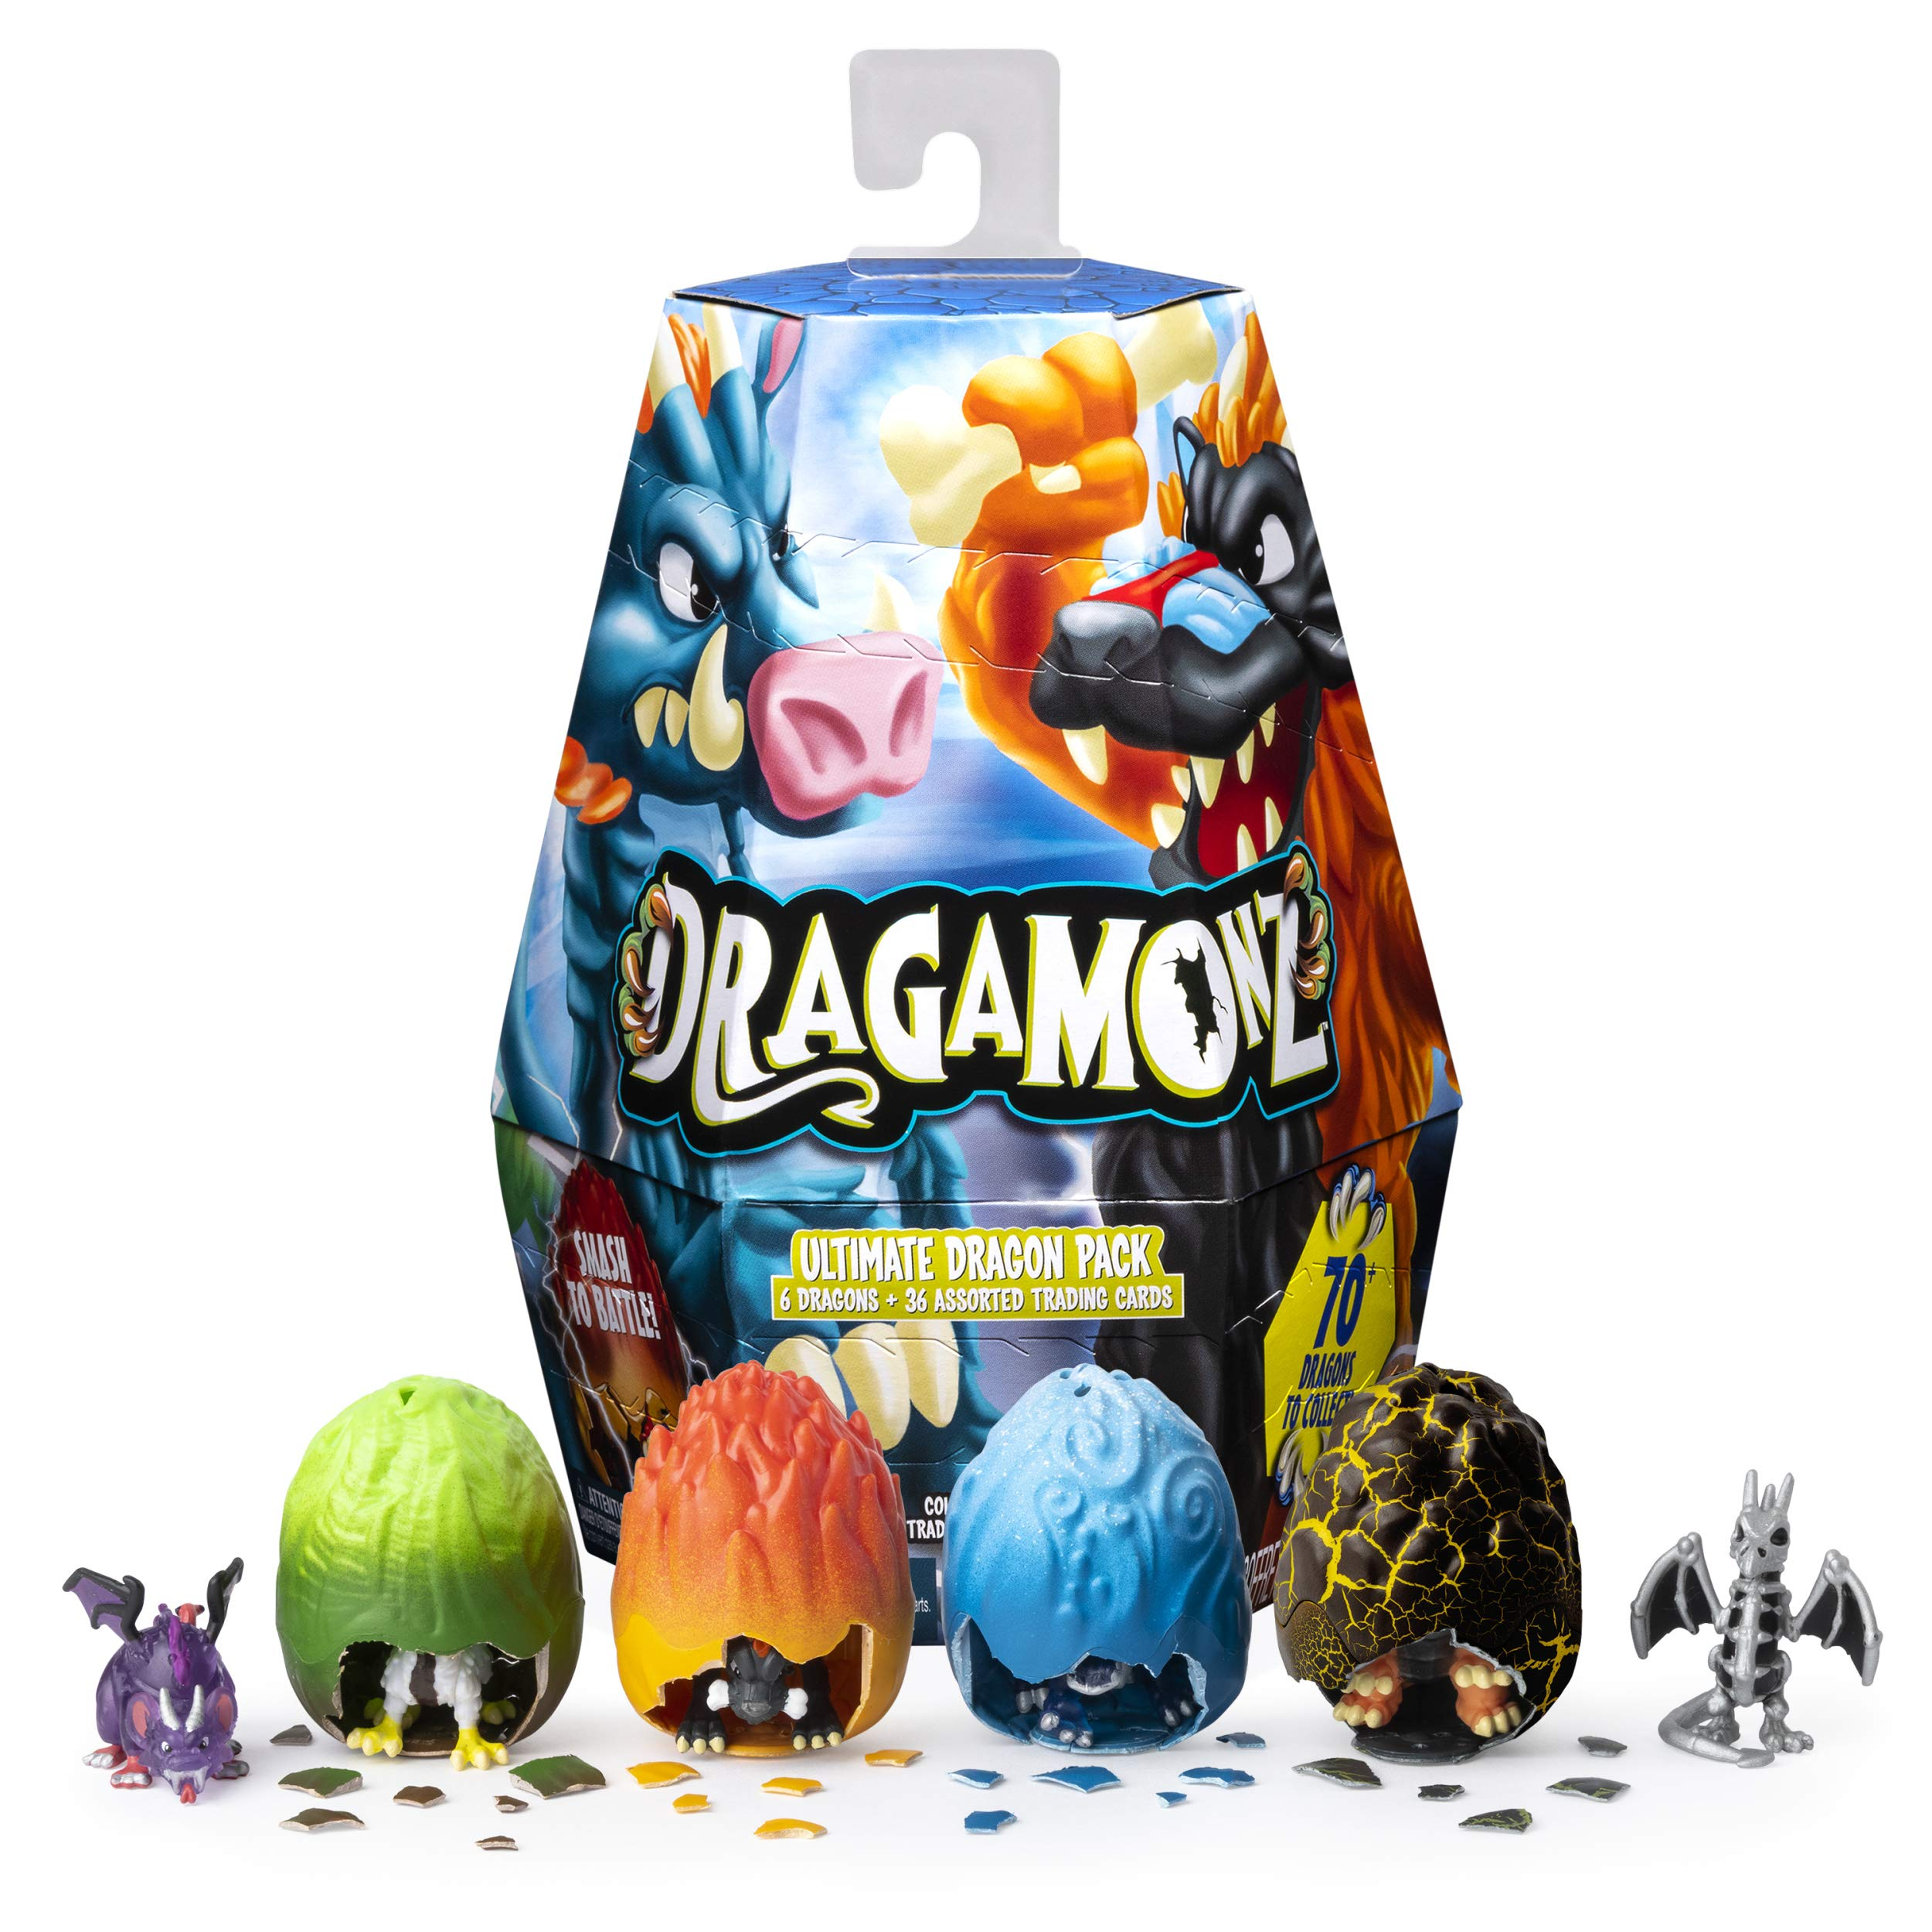 Dragamonz, Ultimate Dragon 6 Pack, Collectible Figure & Trading Card Game, for Kids Aged 5 & Up by Dragamonz